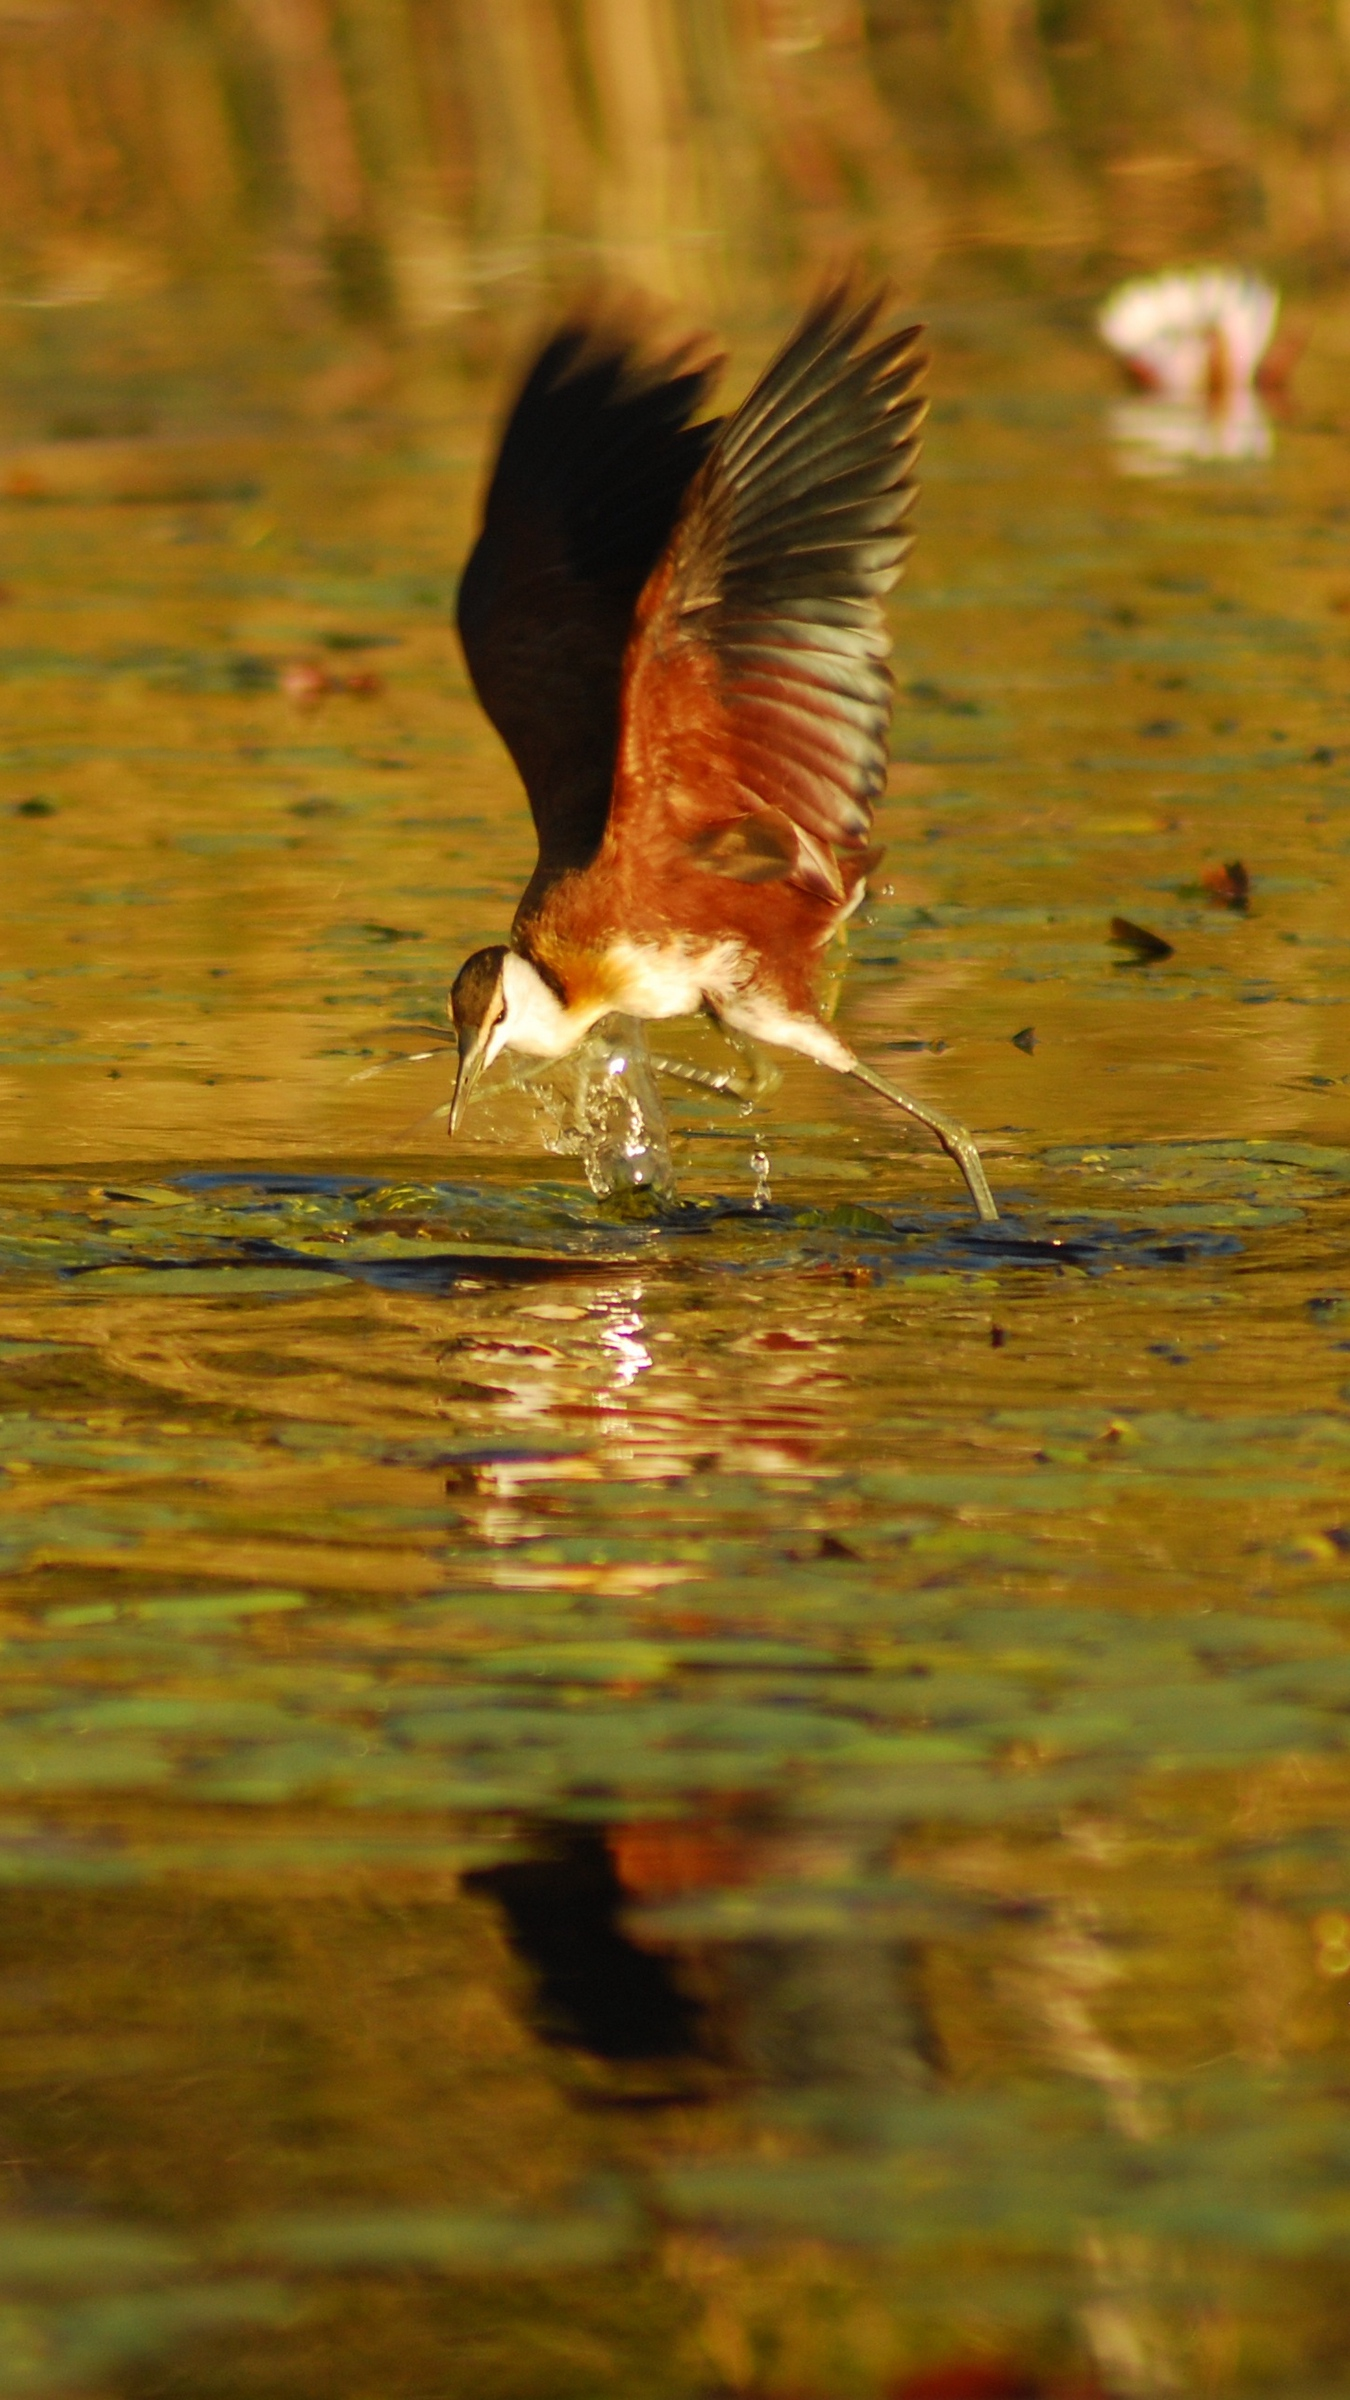 Download wallpaper 1350x2400 botswana bird africa flight iphone 1350x2400